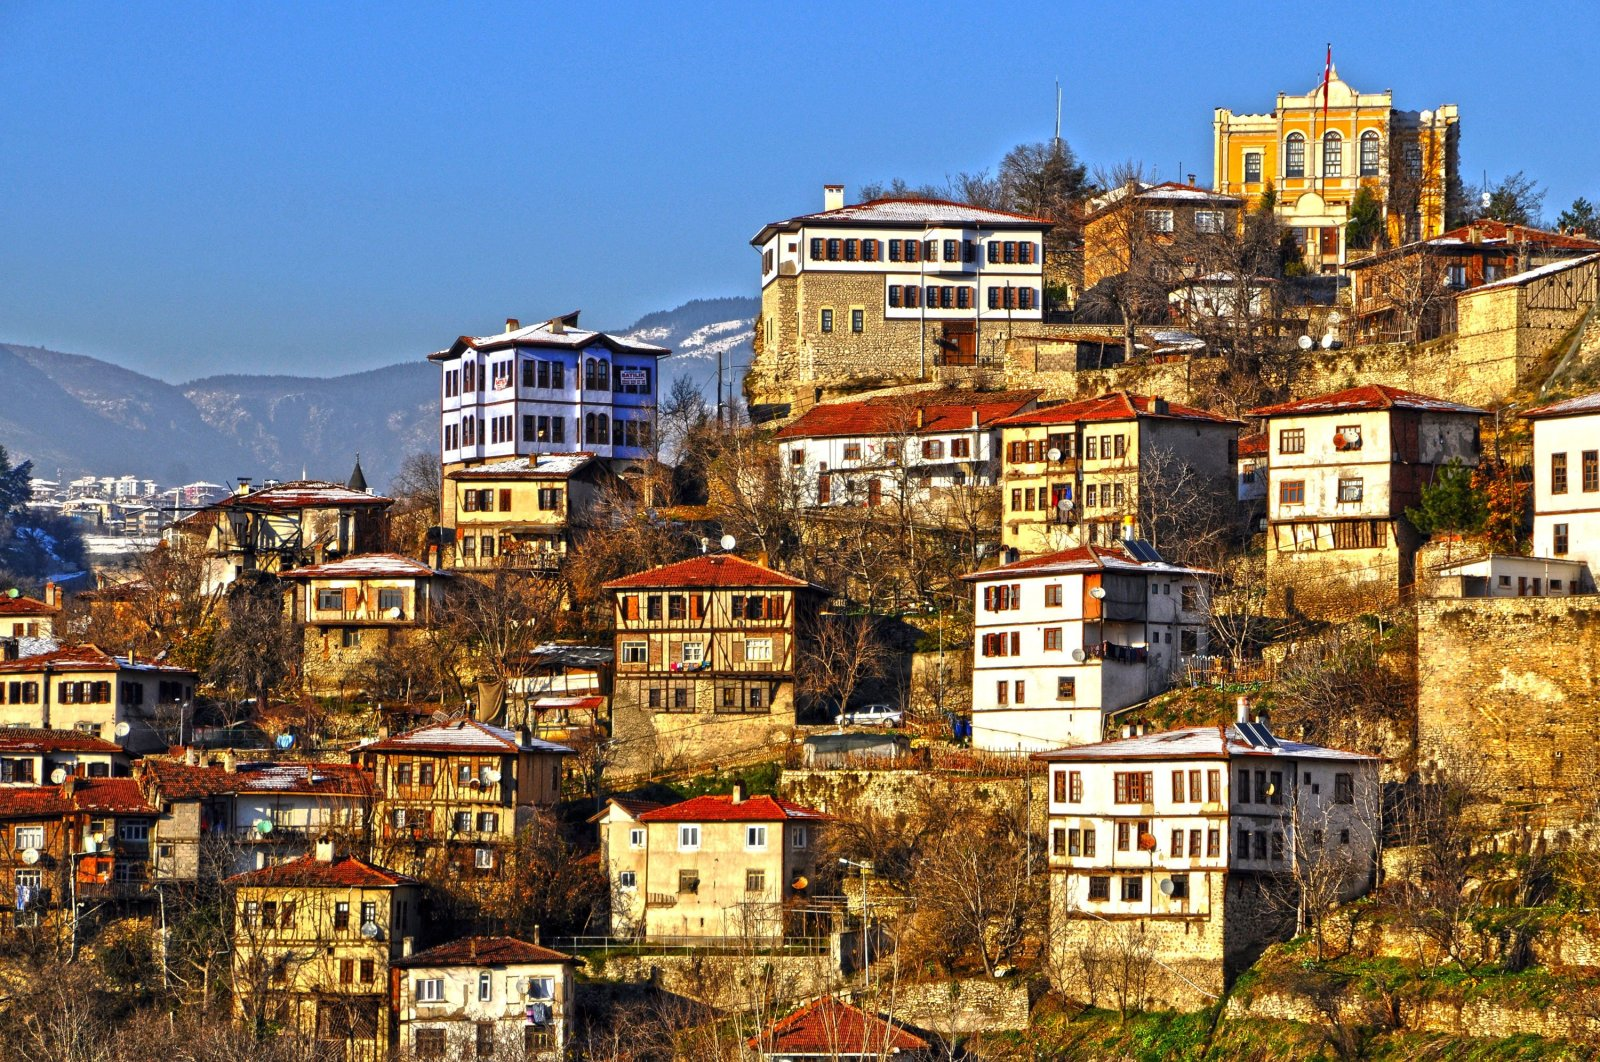 The traditional Ottoman houses create the urban layout of Safranbolu. (Shutterstock Photo)